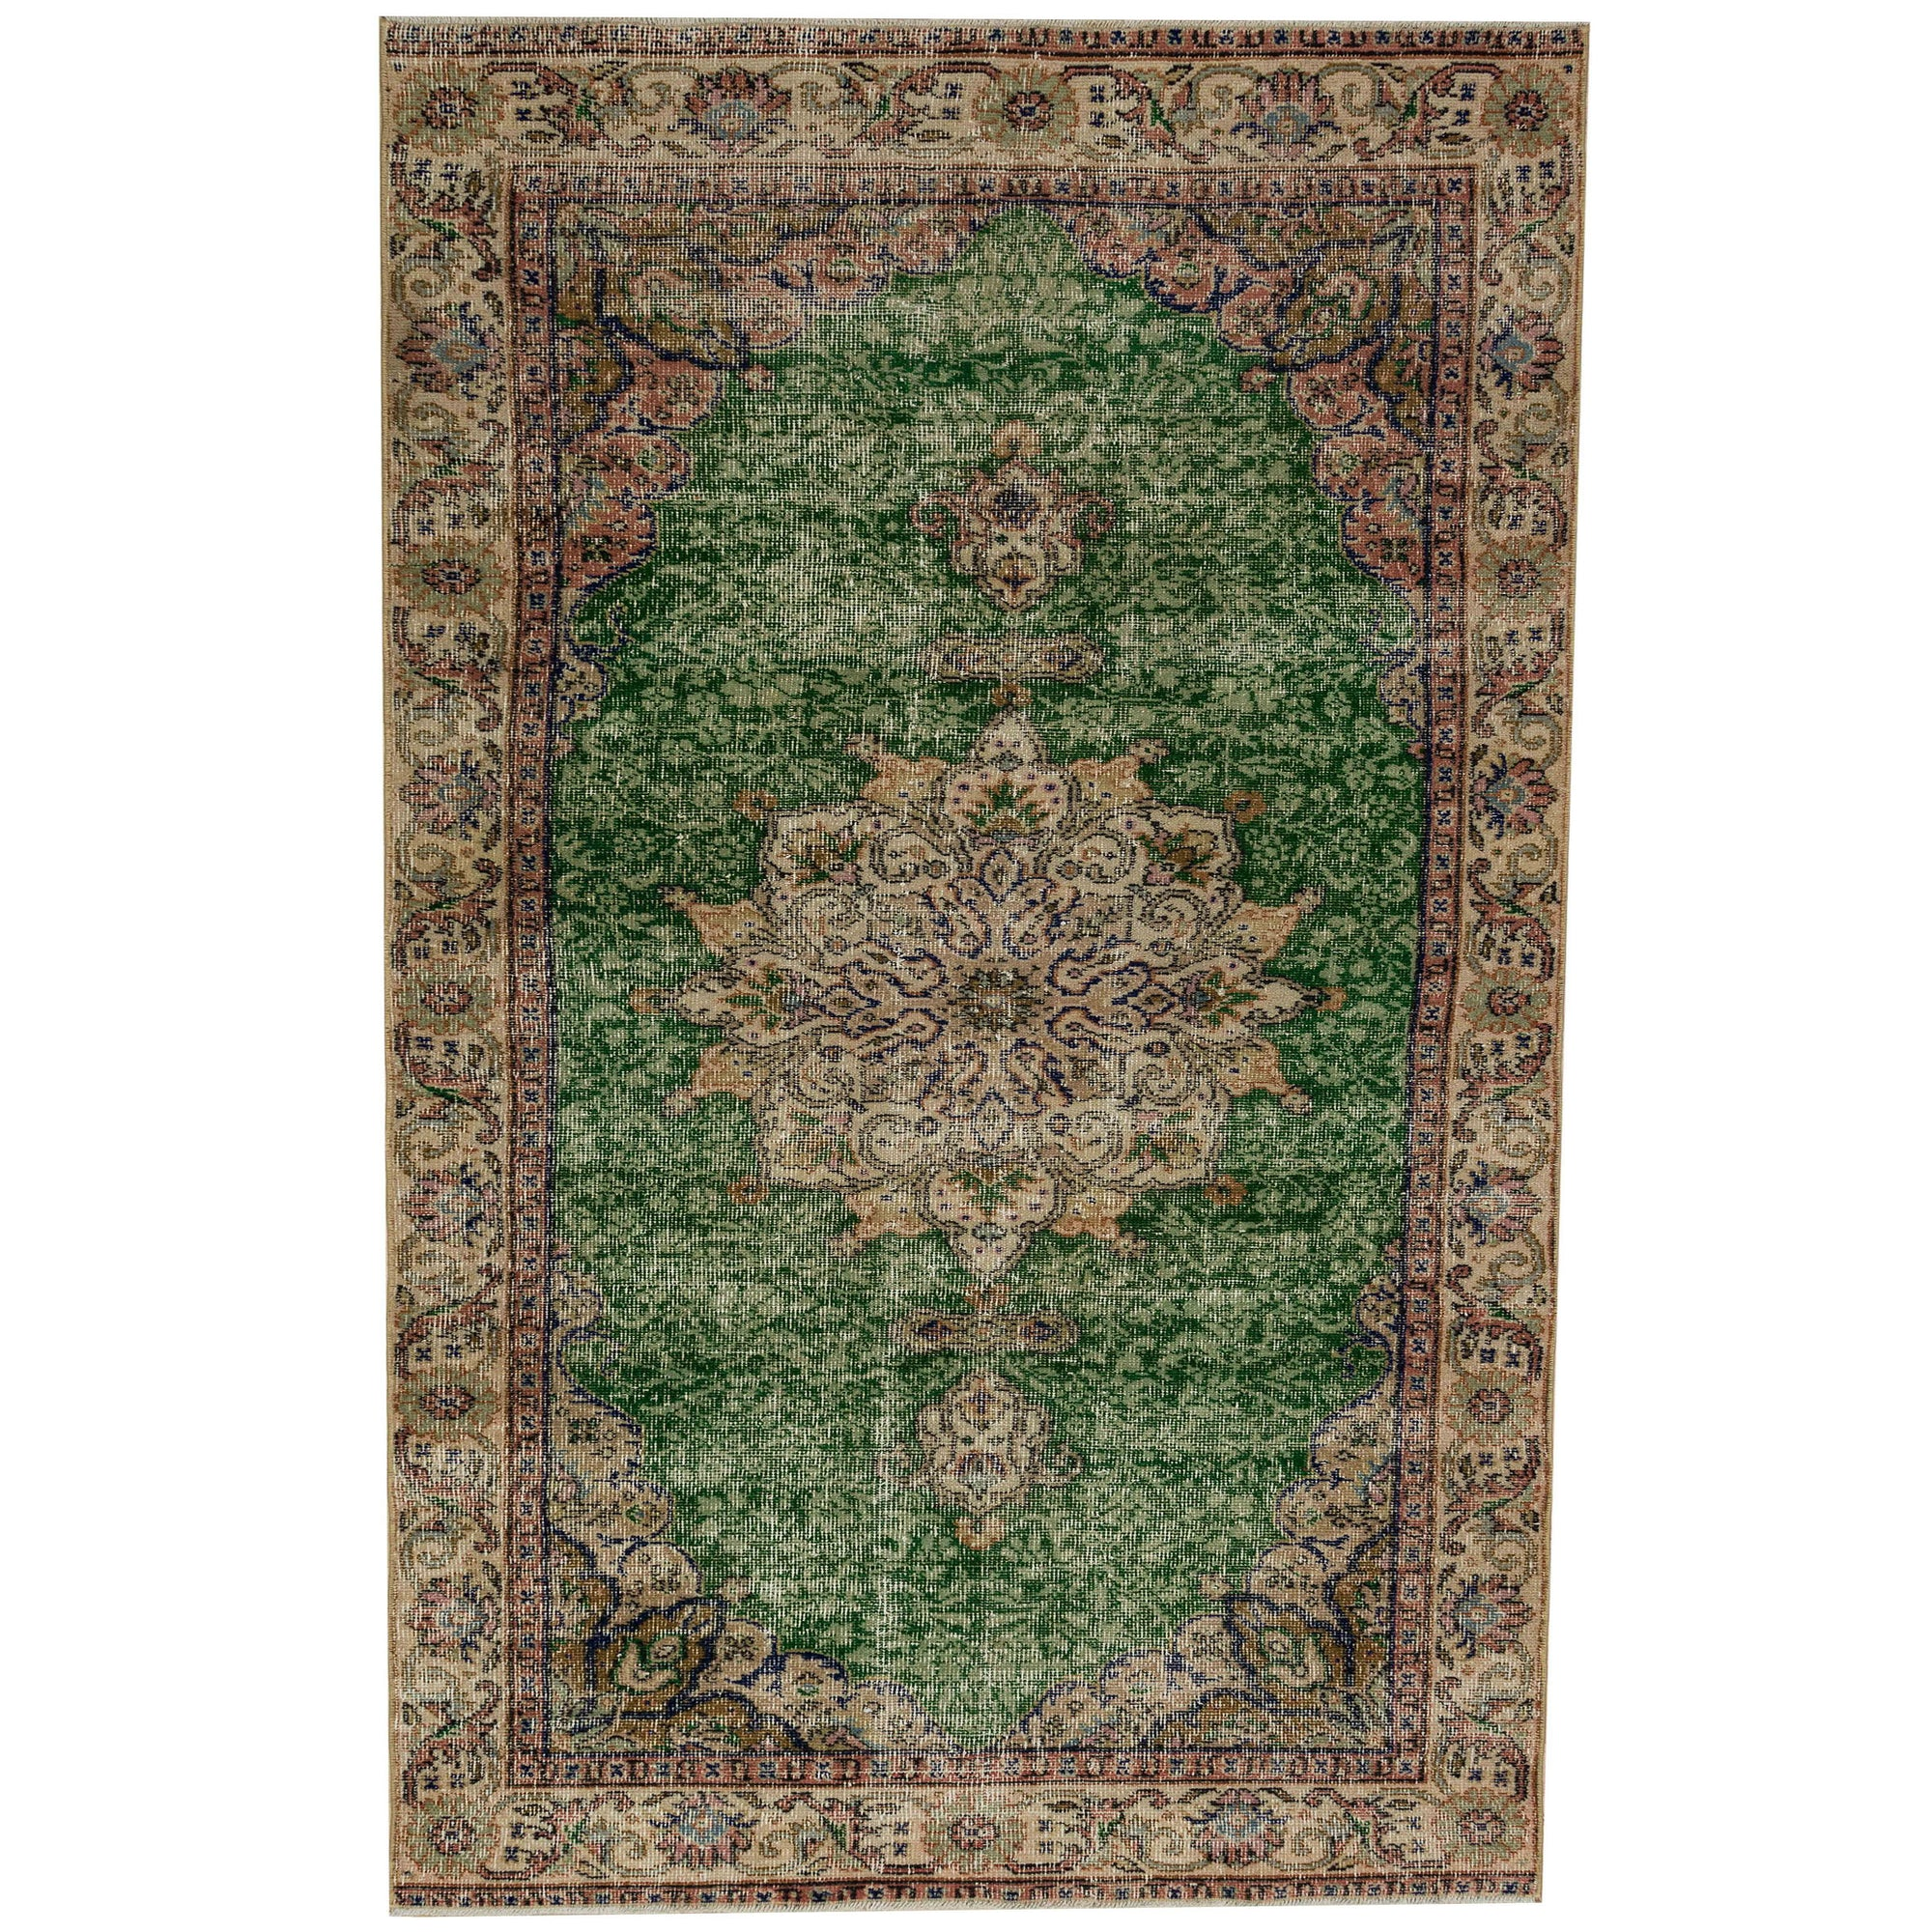 110 X 307 Anatolian Hand Knotted Carpet Vintage Style 60N2710 -  110 × 307 سجادة أناضولية معقودة يدويًا - Shop Online Furniture and Home Decor Store in Dubai, UAE at ebarza